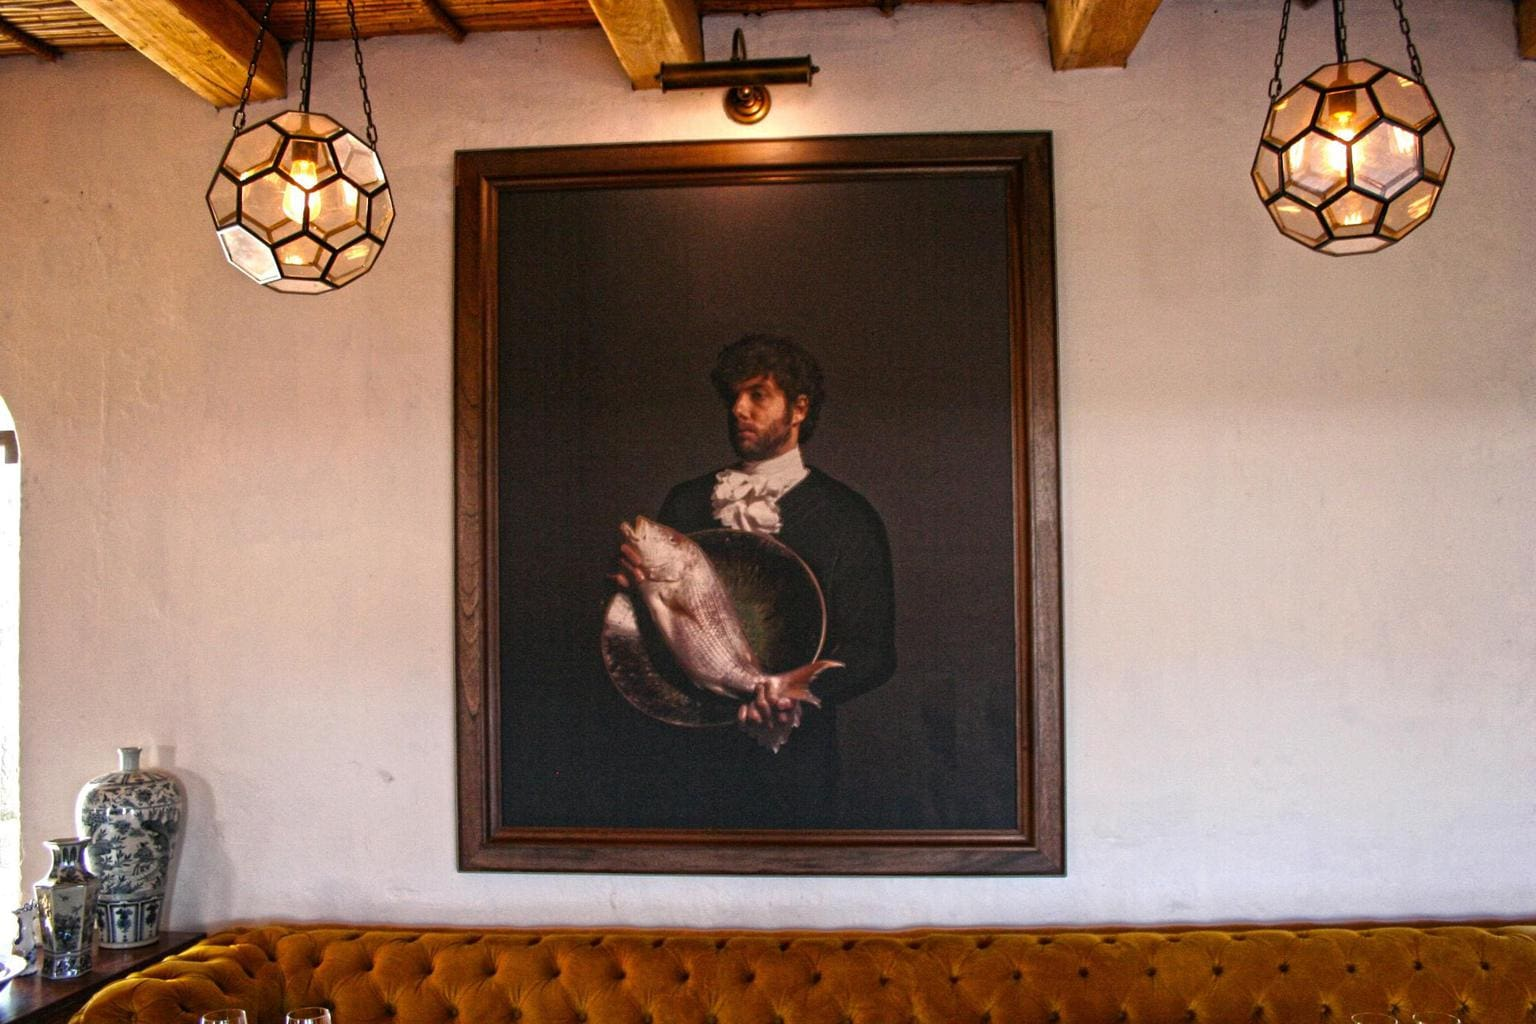 The Werf restaurant painting at Boschendal